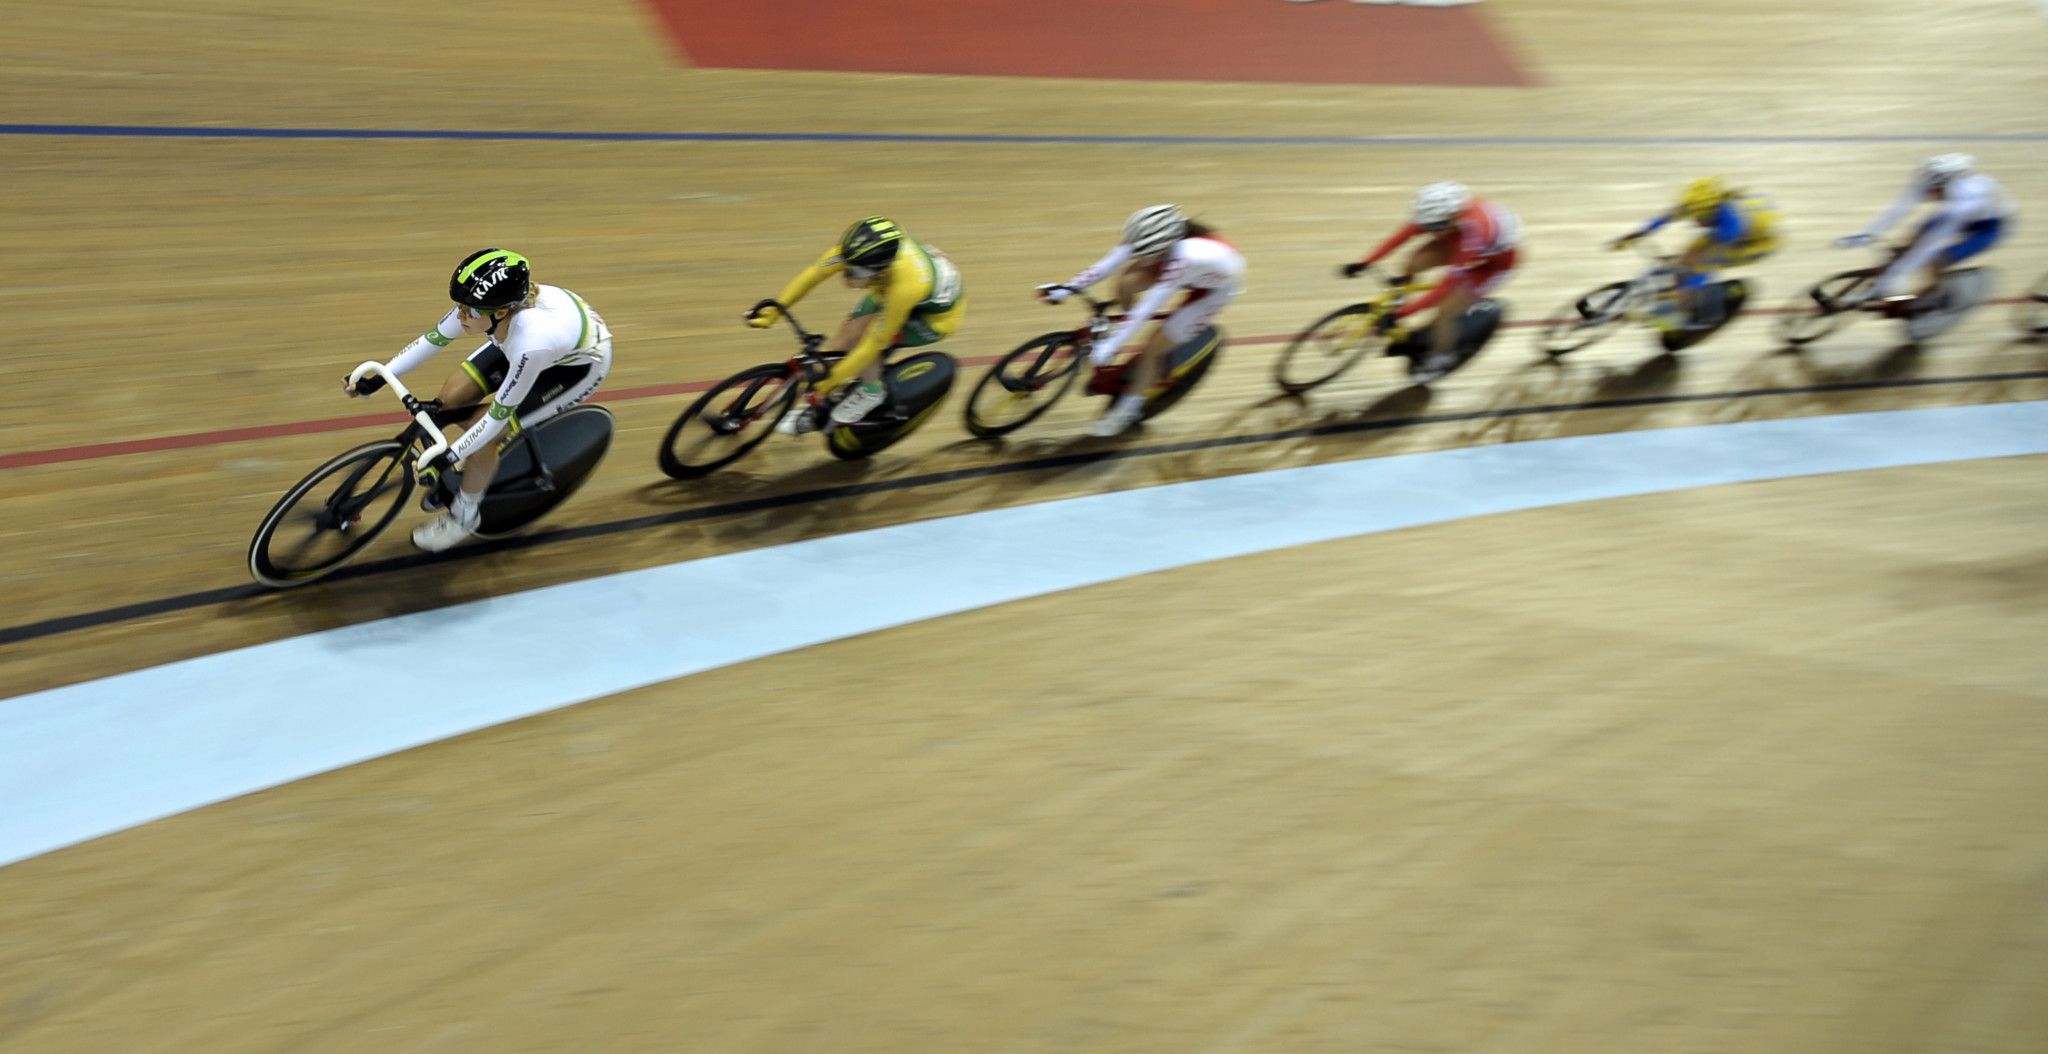 It is hoped the Knightswood BMX Centre will build on the success of the Sir Chris Hoy Velodrome at the Emirates Arena ©Getty Images